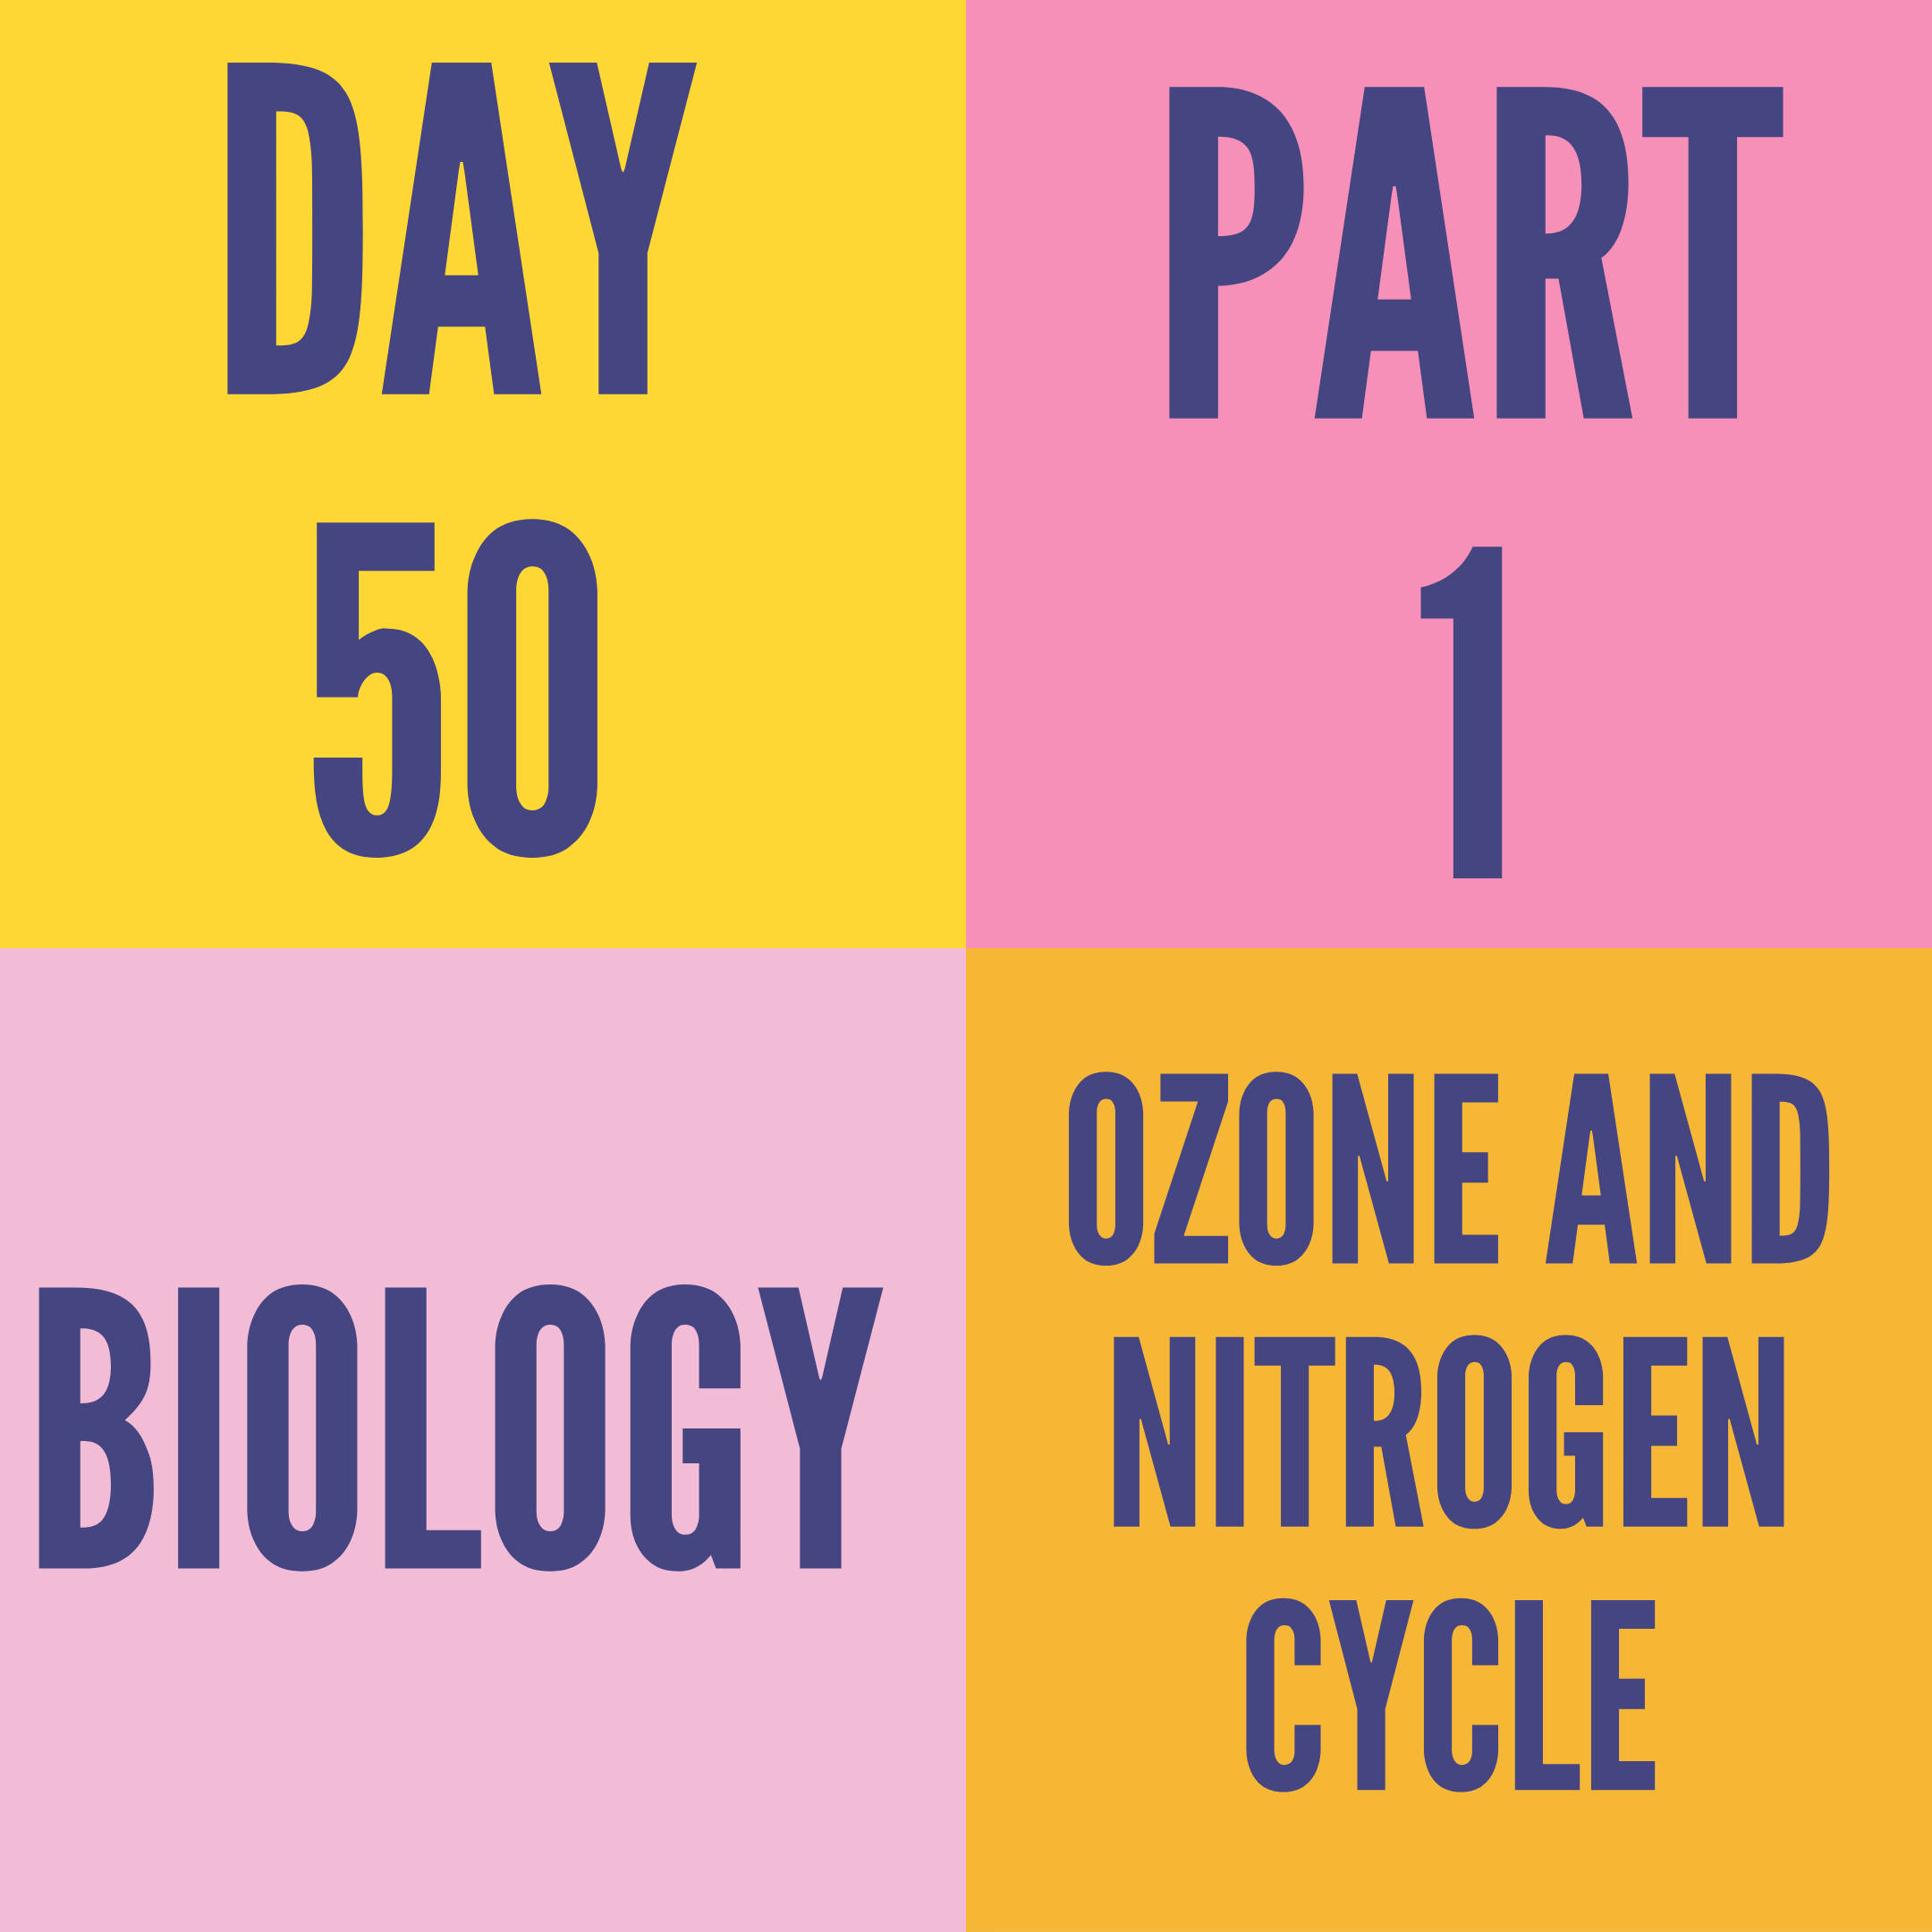 DAY-50 PART-1 OZONE AND NITROGEN CYCLE